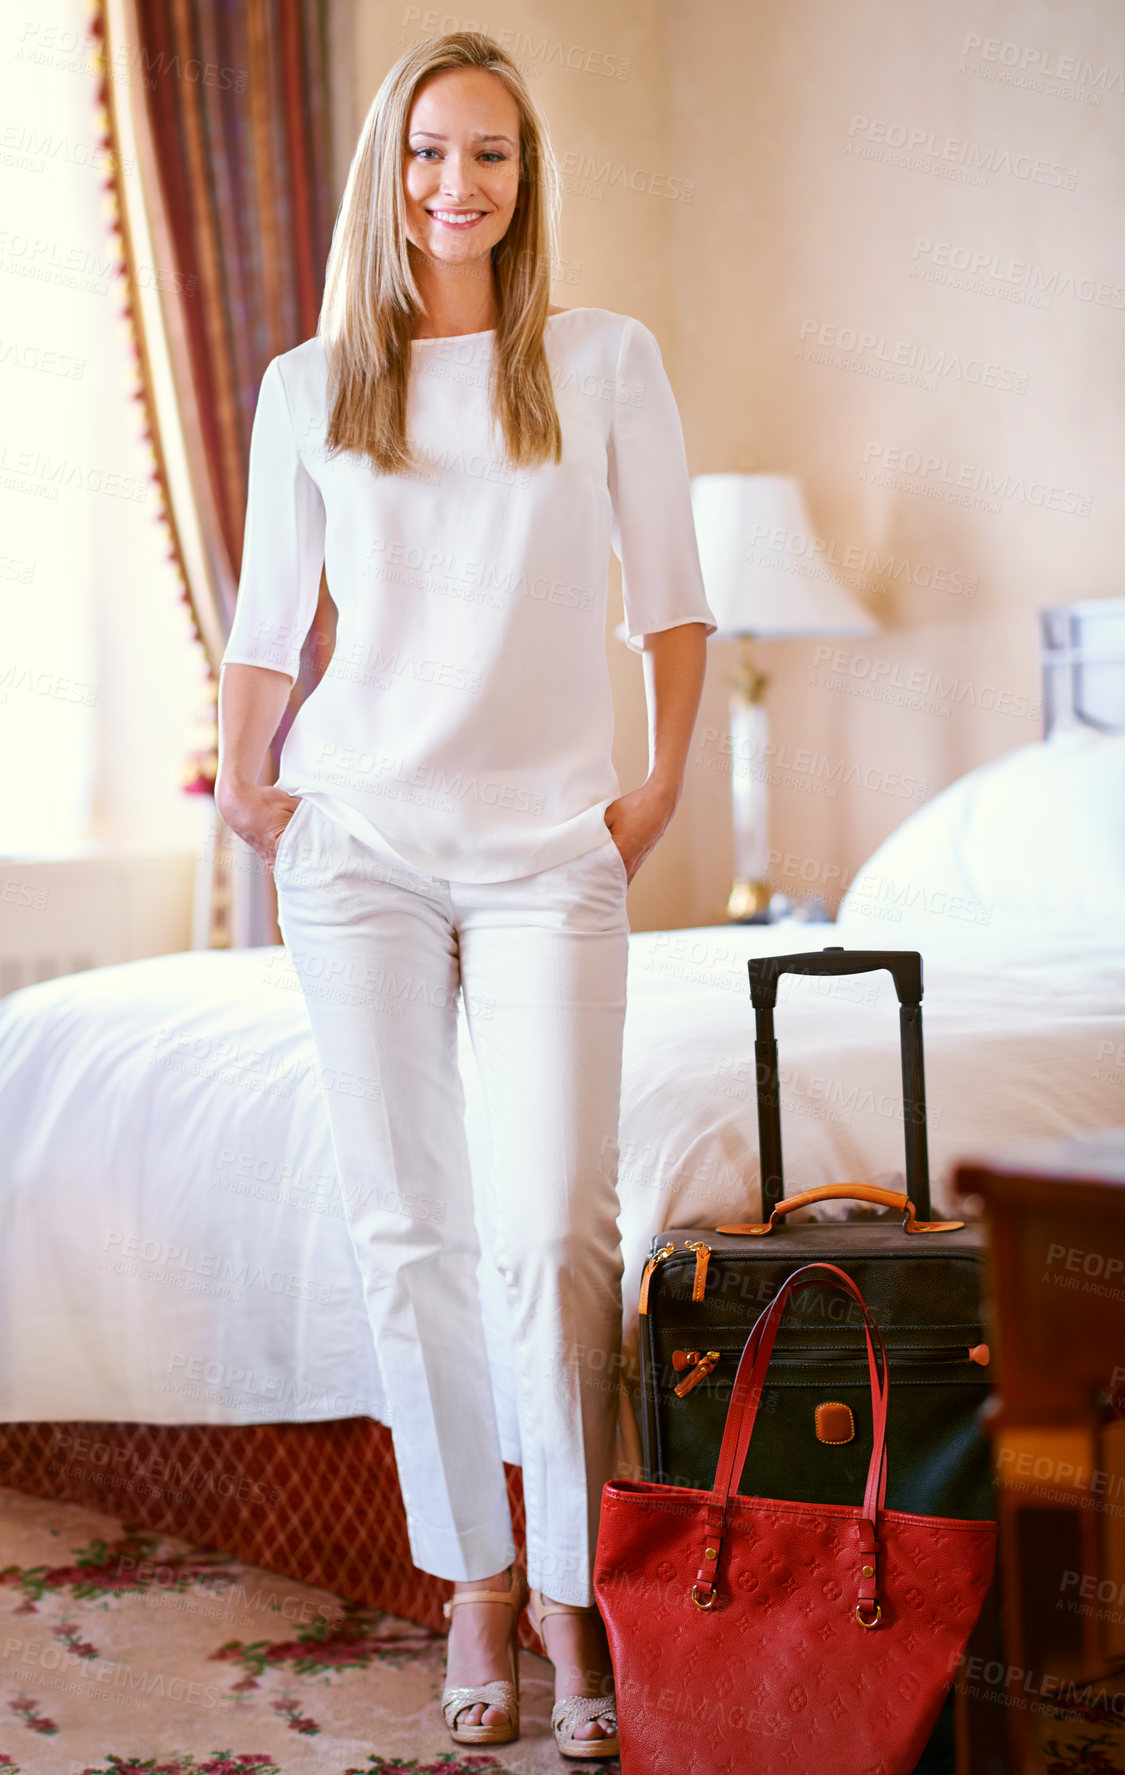 Buy stock photo Shot of an attractive young woman in her hotel suite